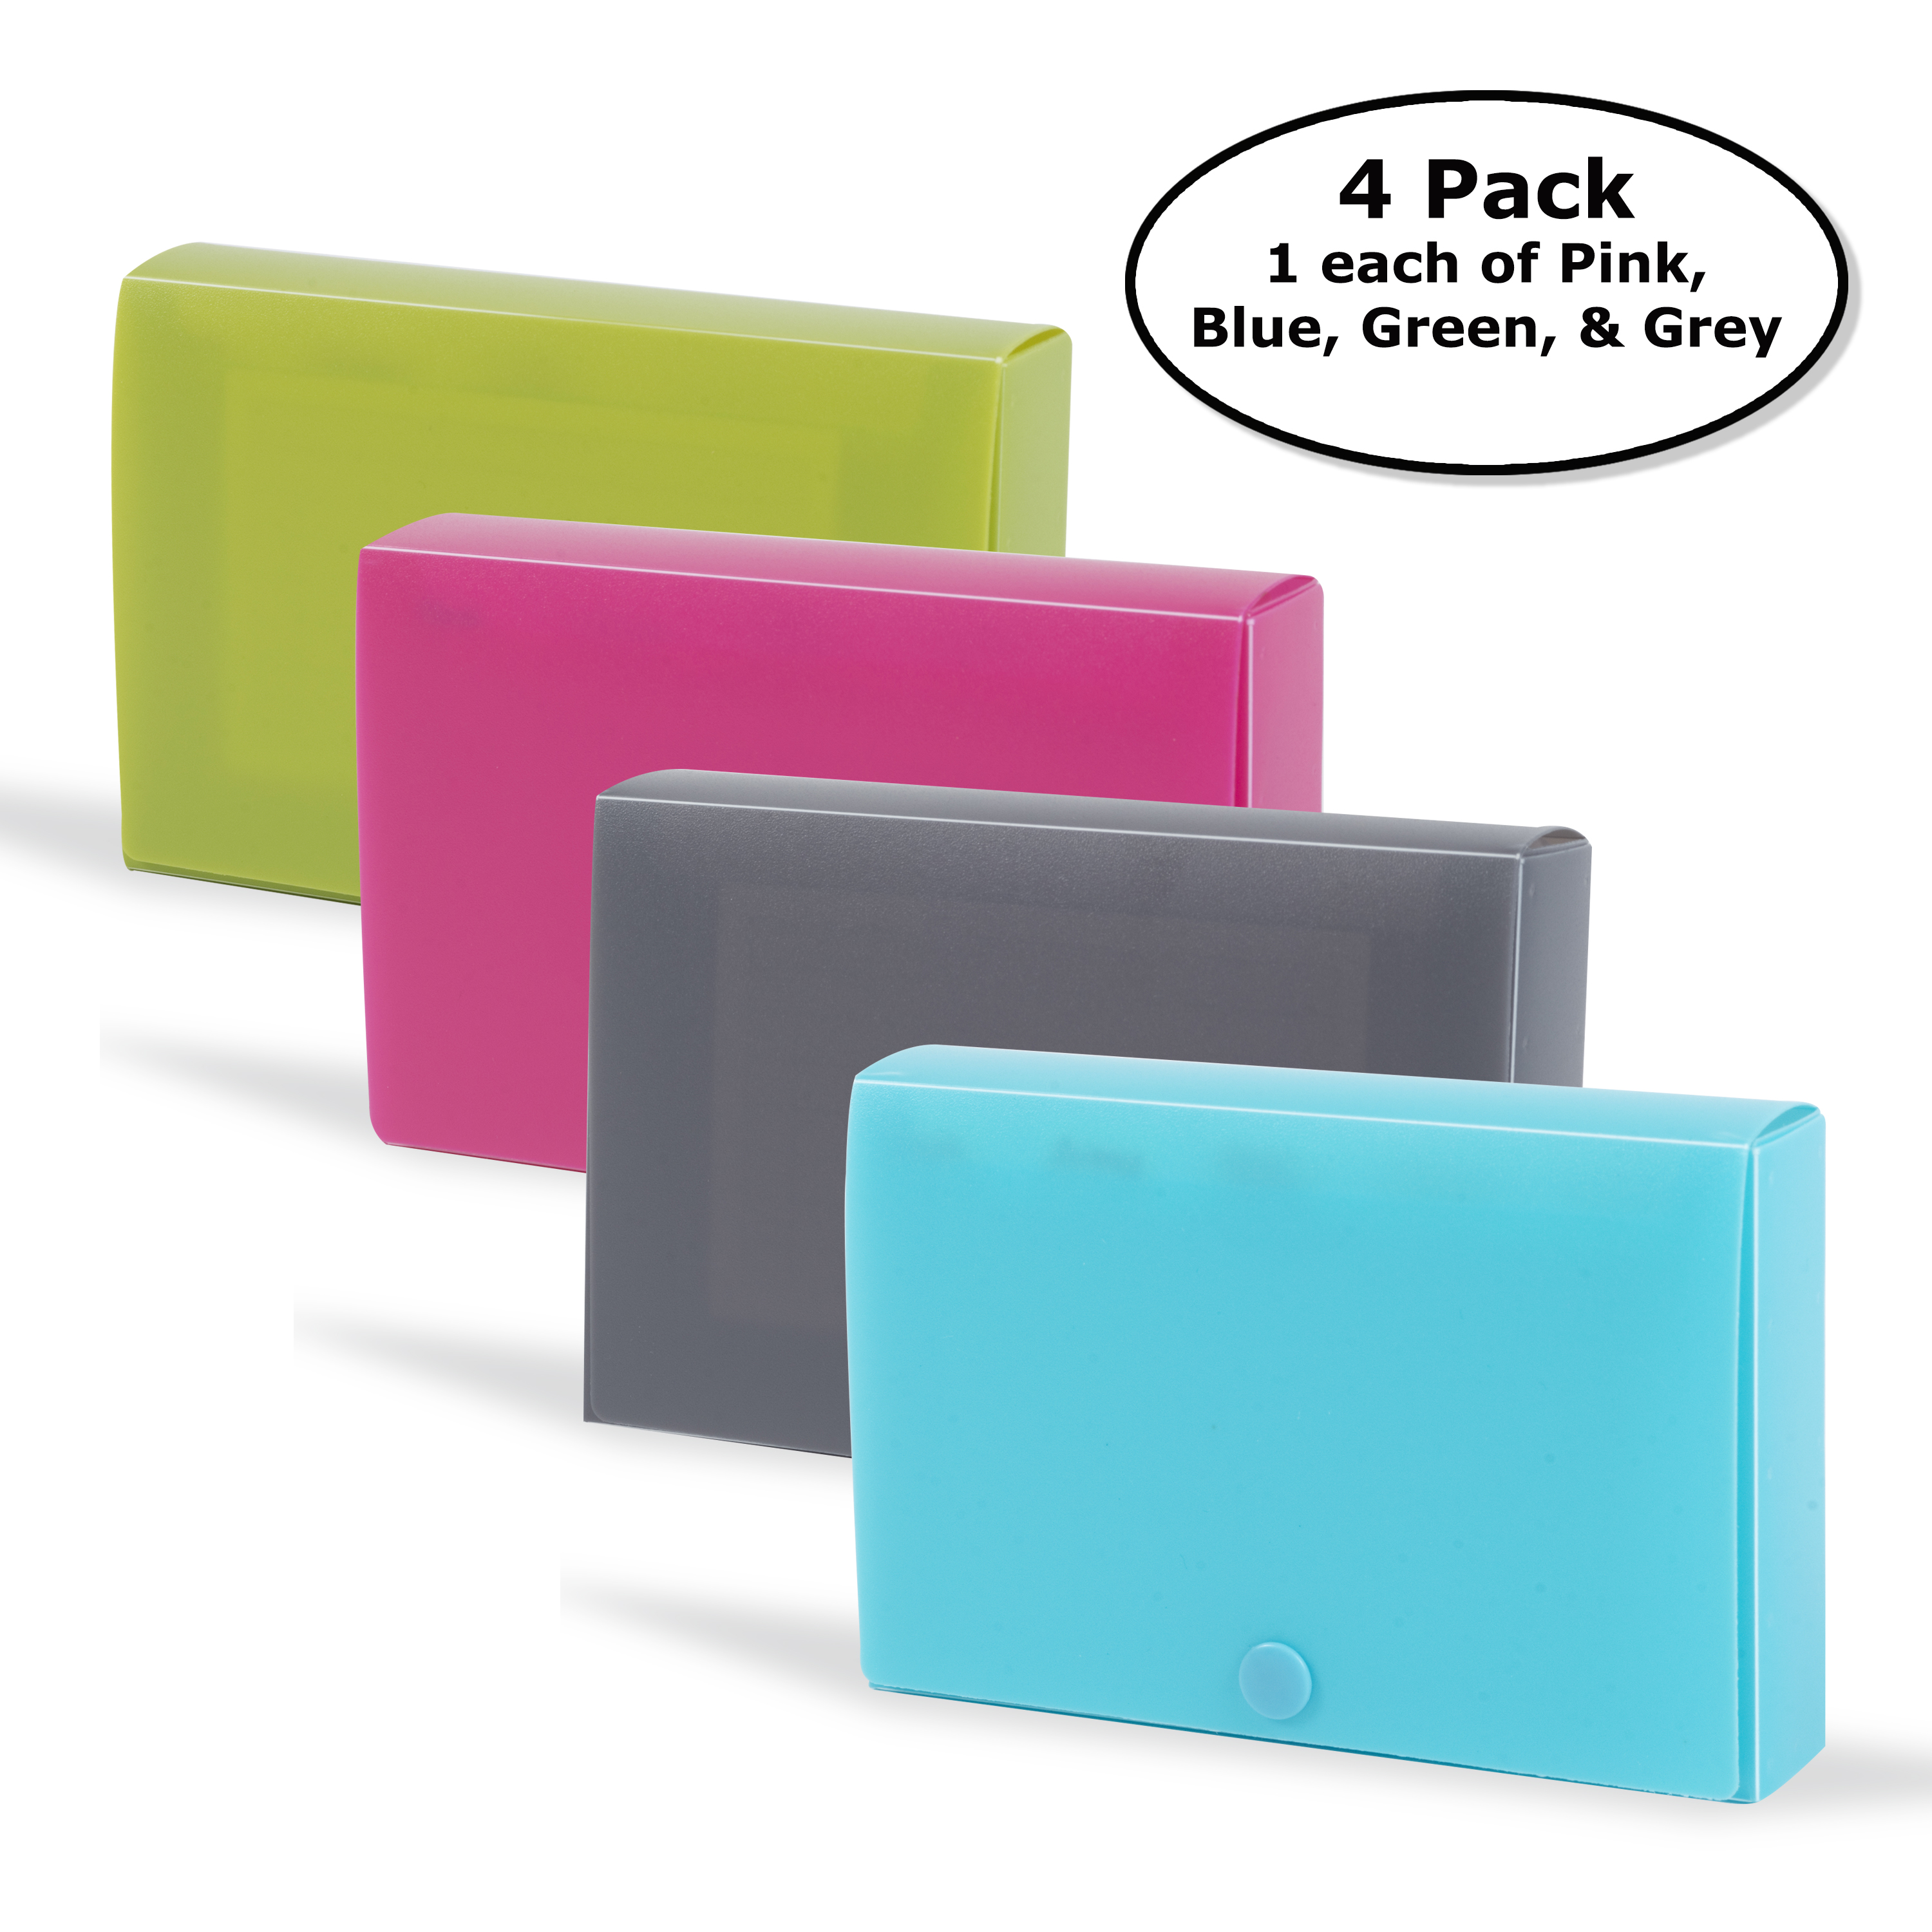 DocIt Index Card Holder 3 x 5 for Storing Recipe Cards School